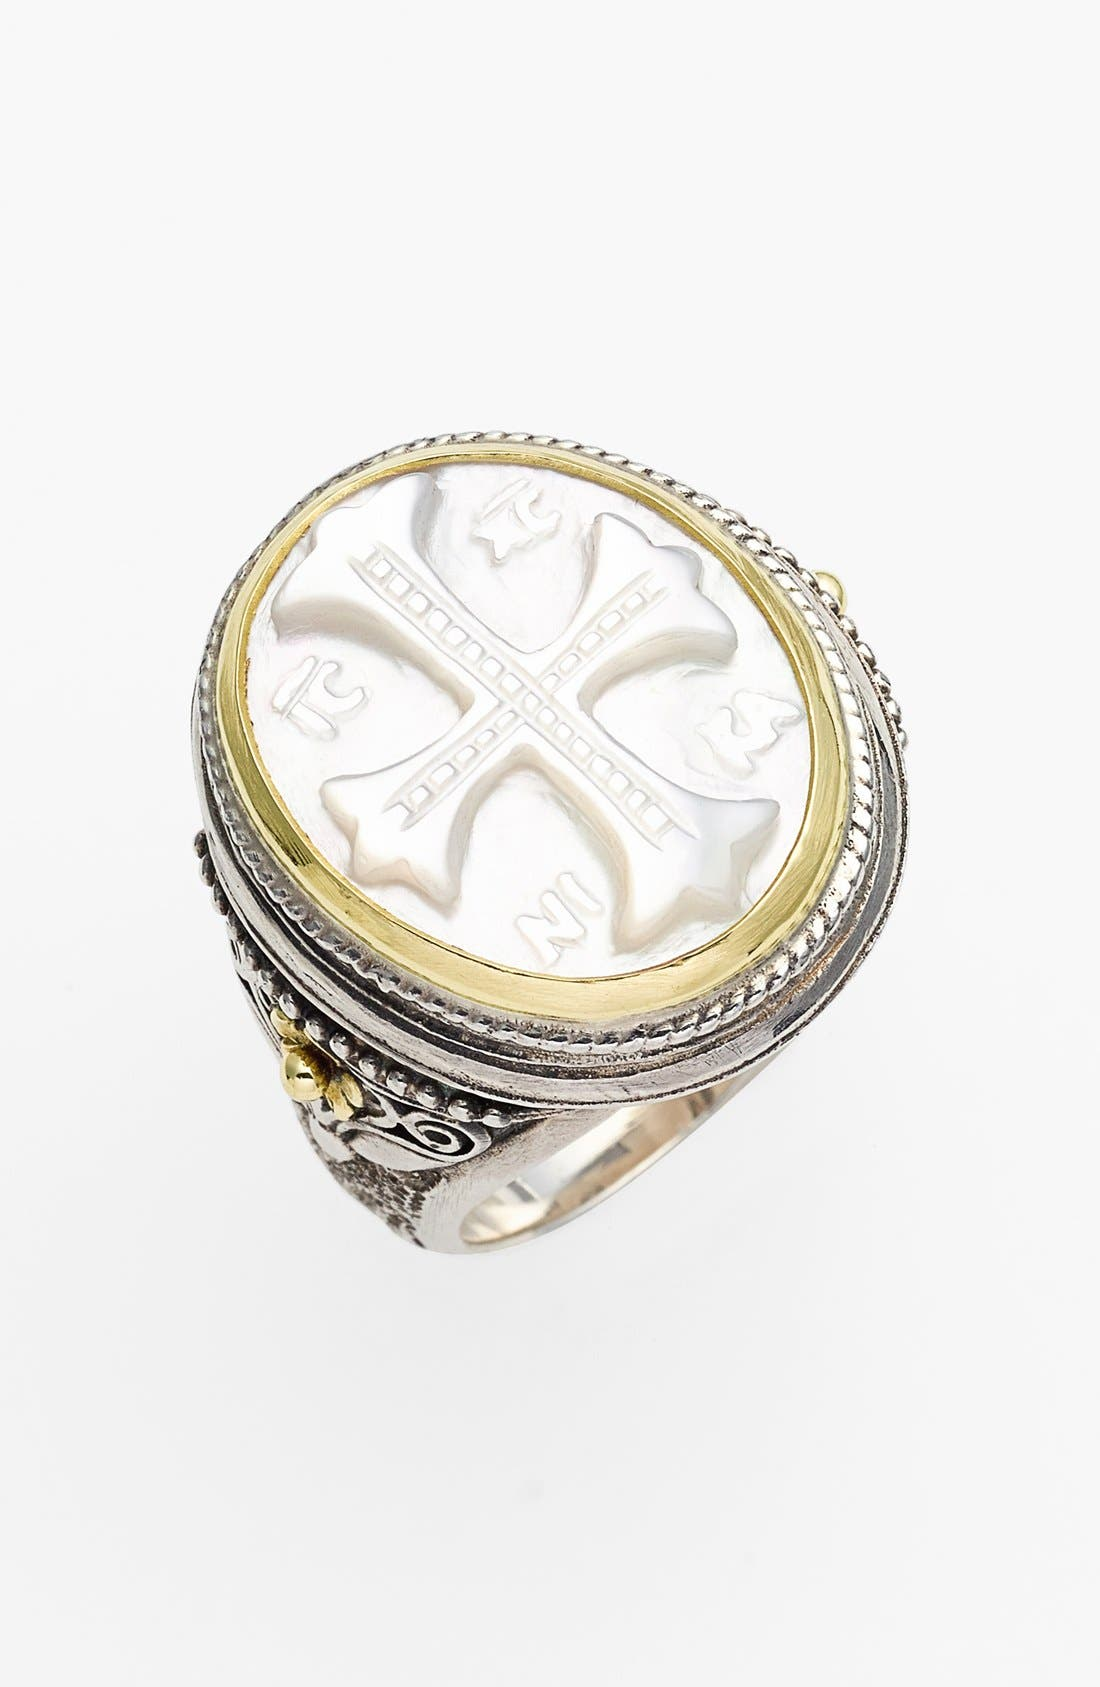 Konstantino 'Athena' Mother of Pearl Signet Ring